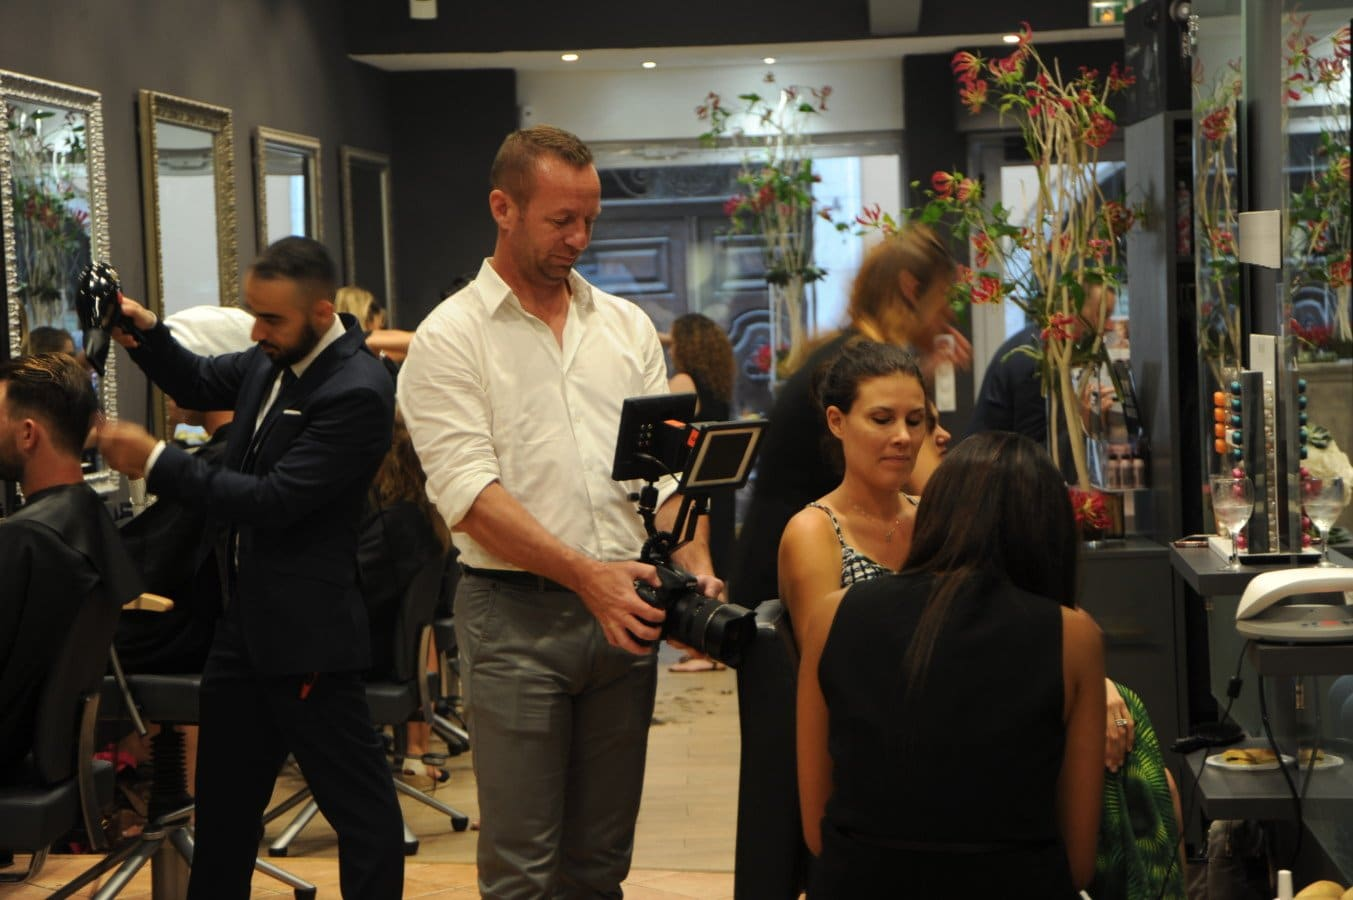 L Oreal La Nuit De La Coiffure 2017 At The Cutting Shop The